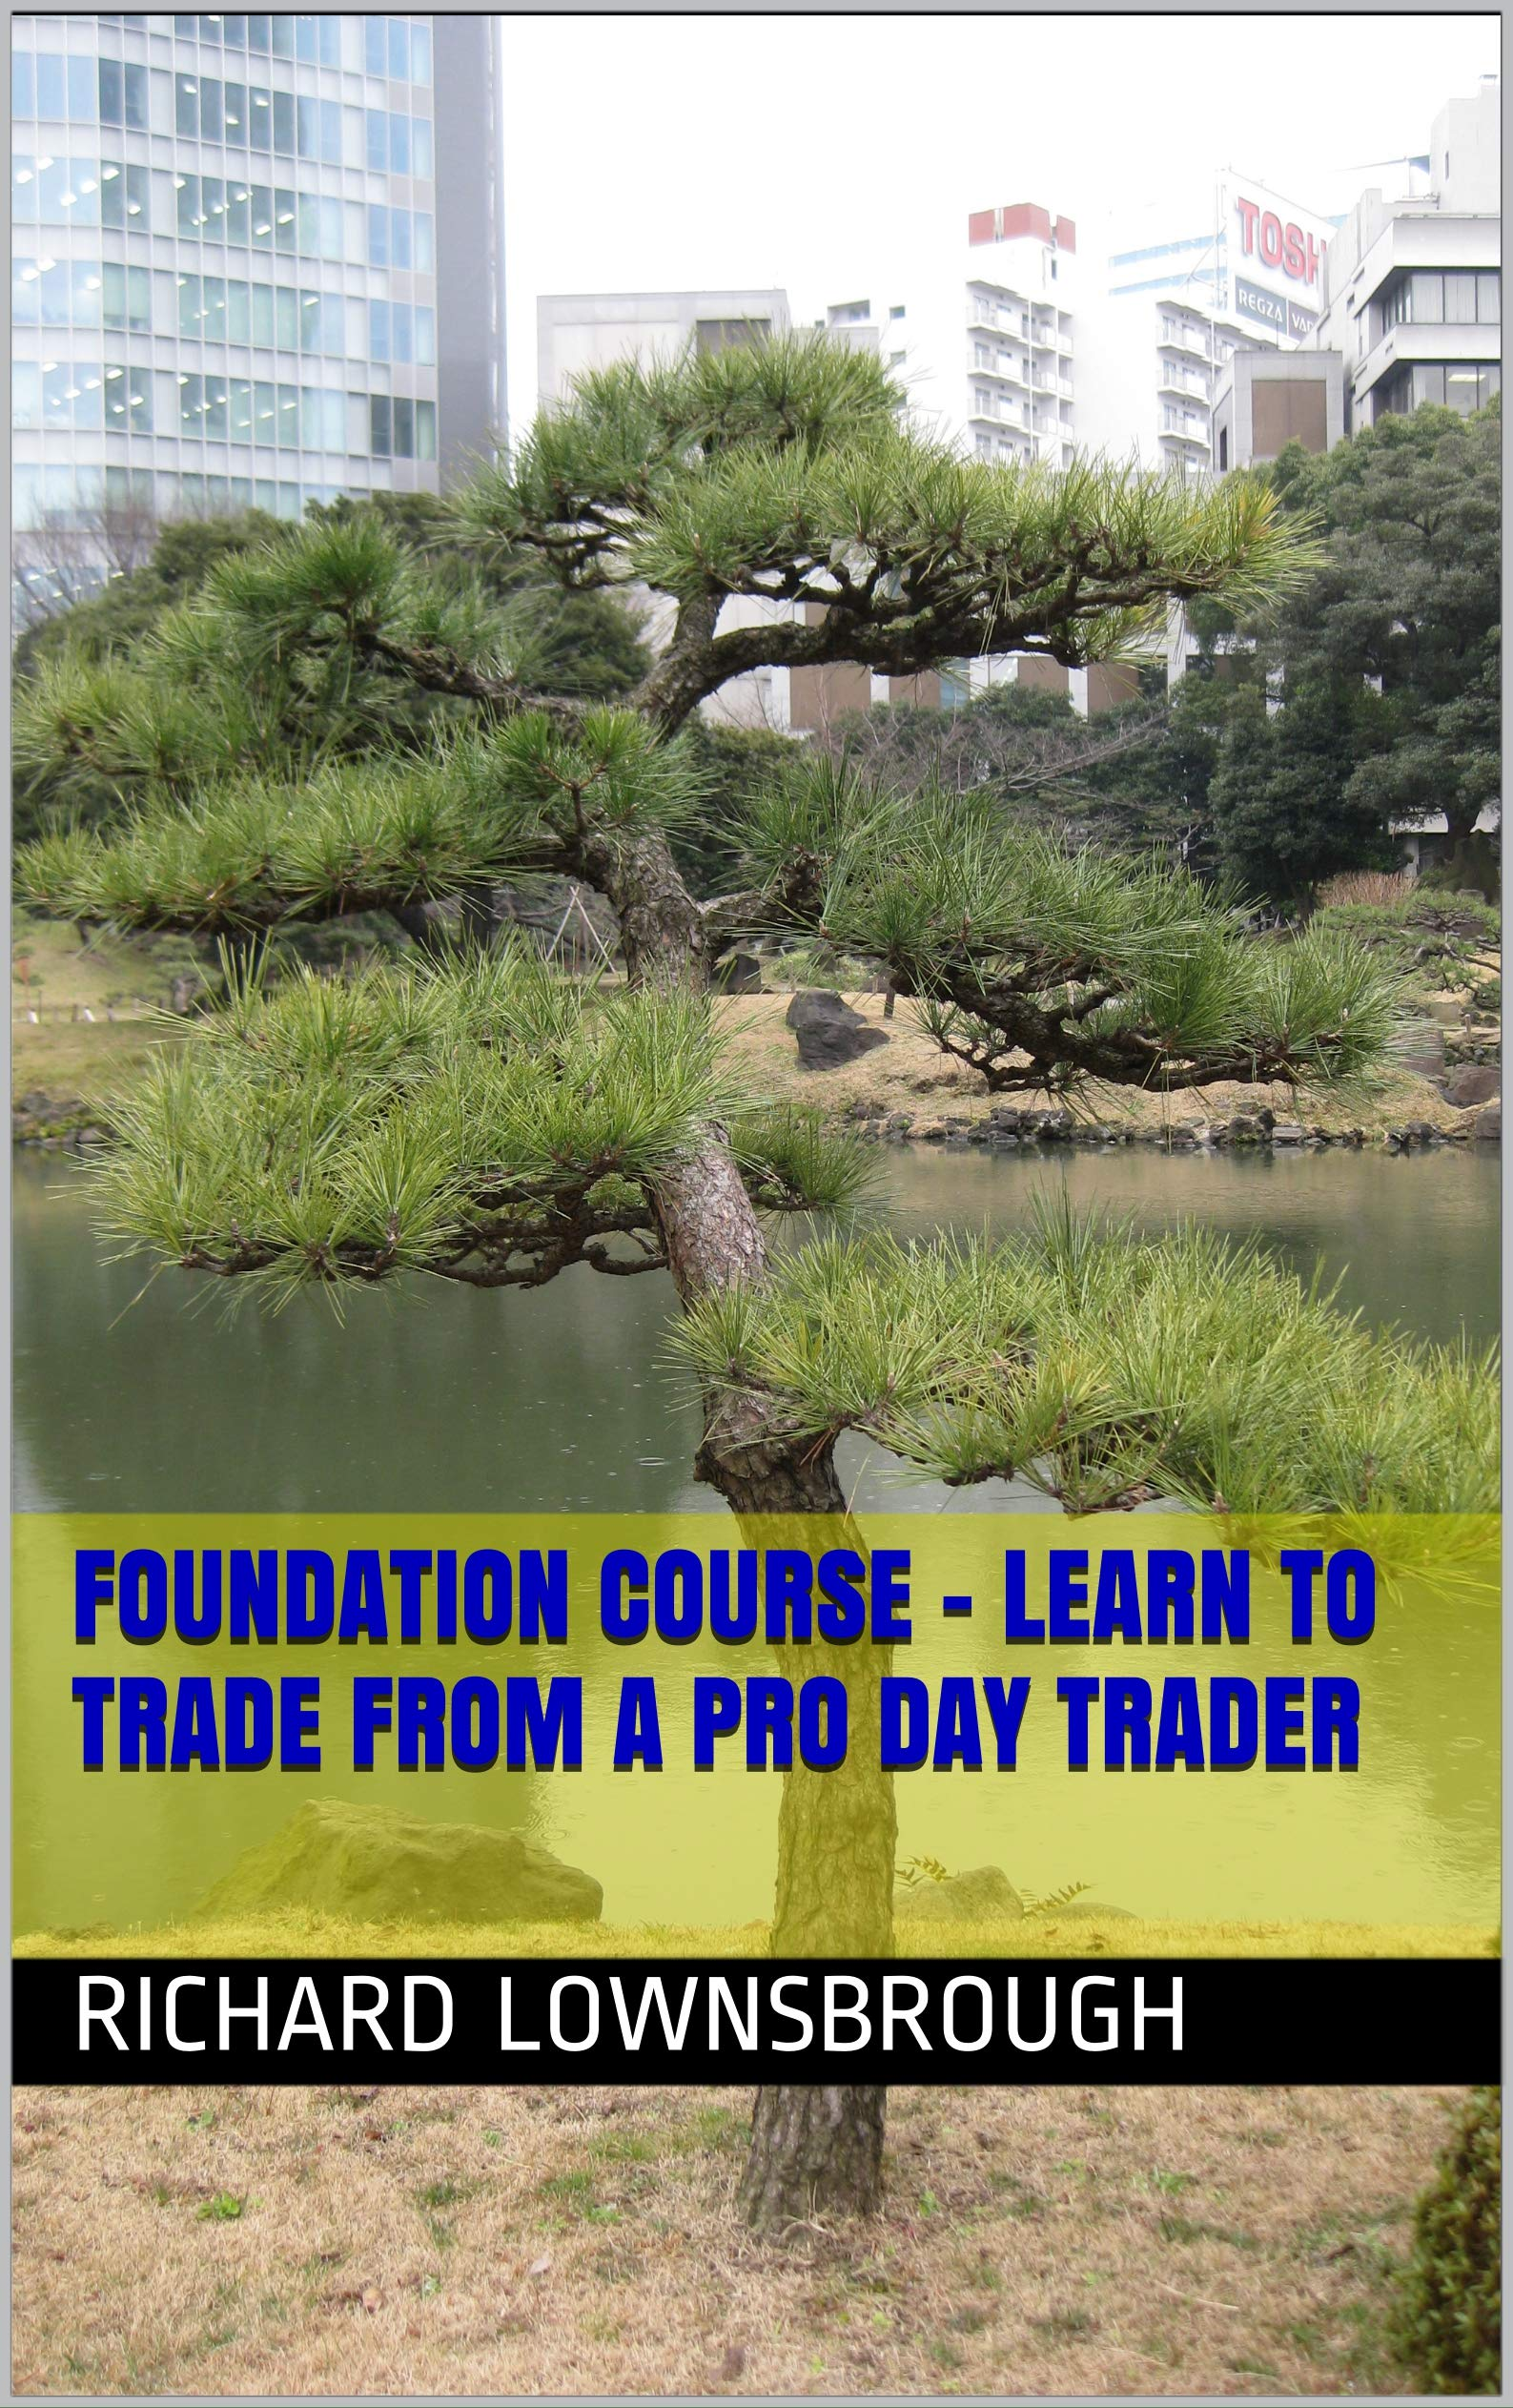 Foundation Course - Learn to trade from a Pro Day Trader